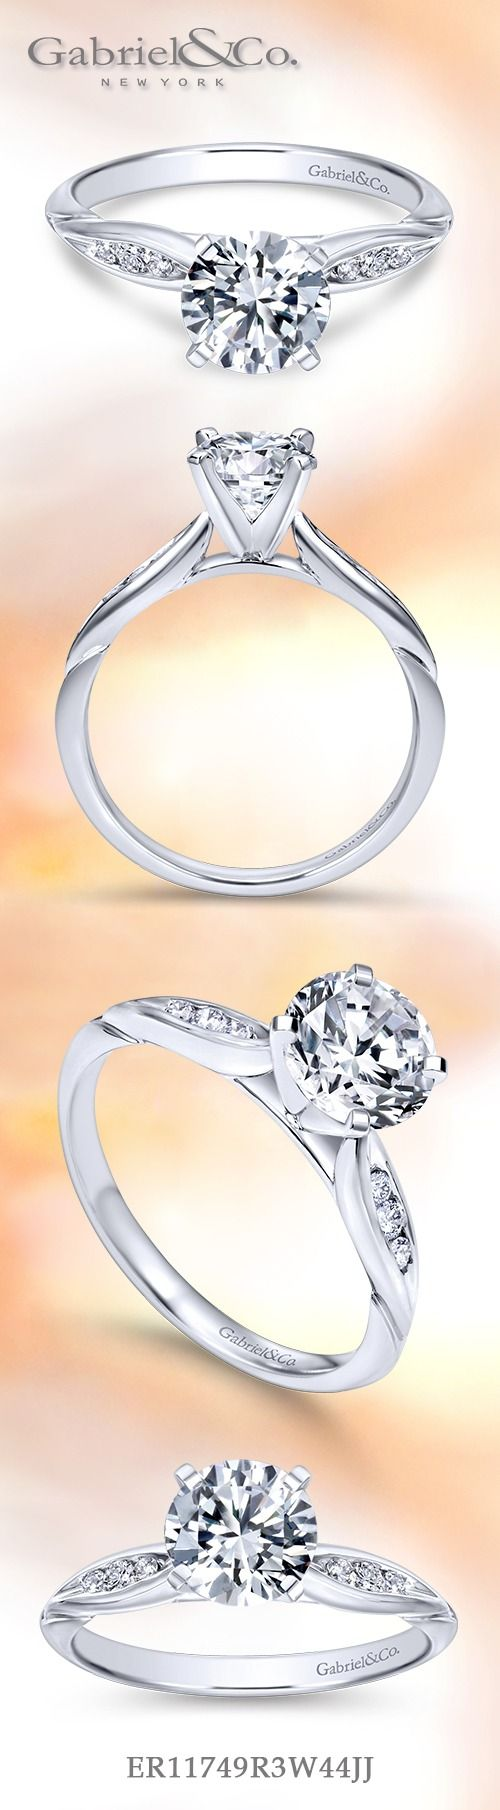 17 Best ideas about Most Beautiful Engagement Rings on Pinterest